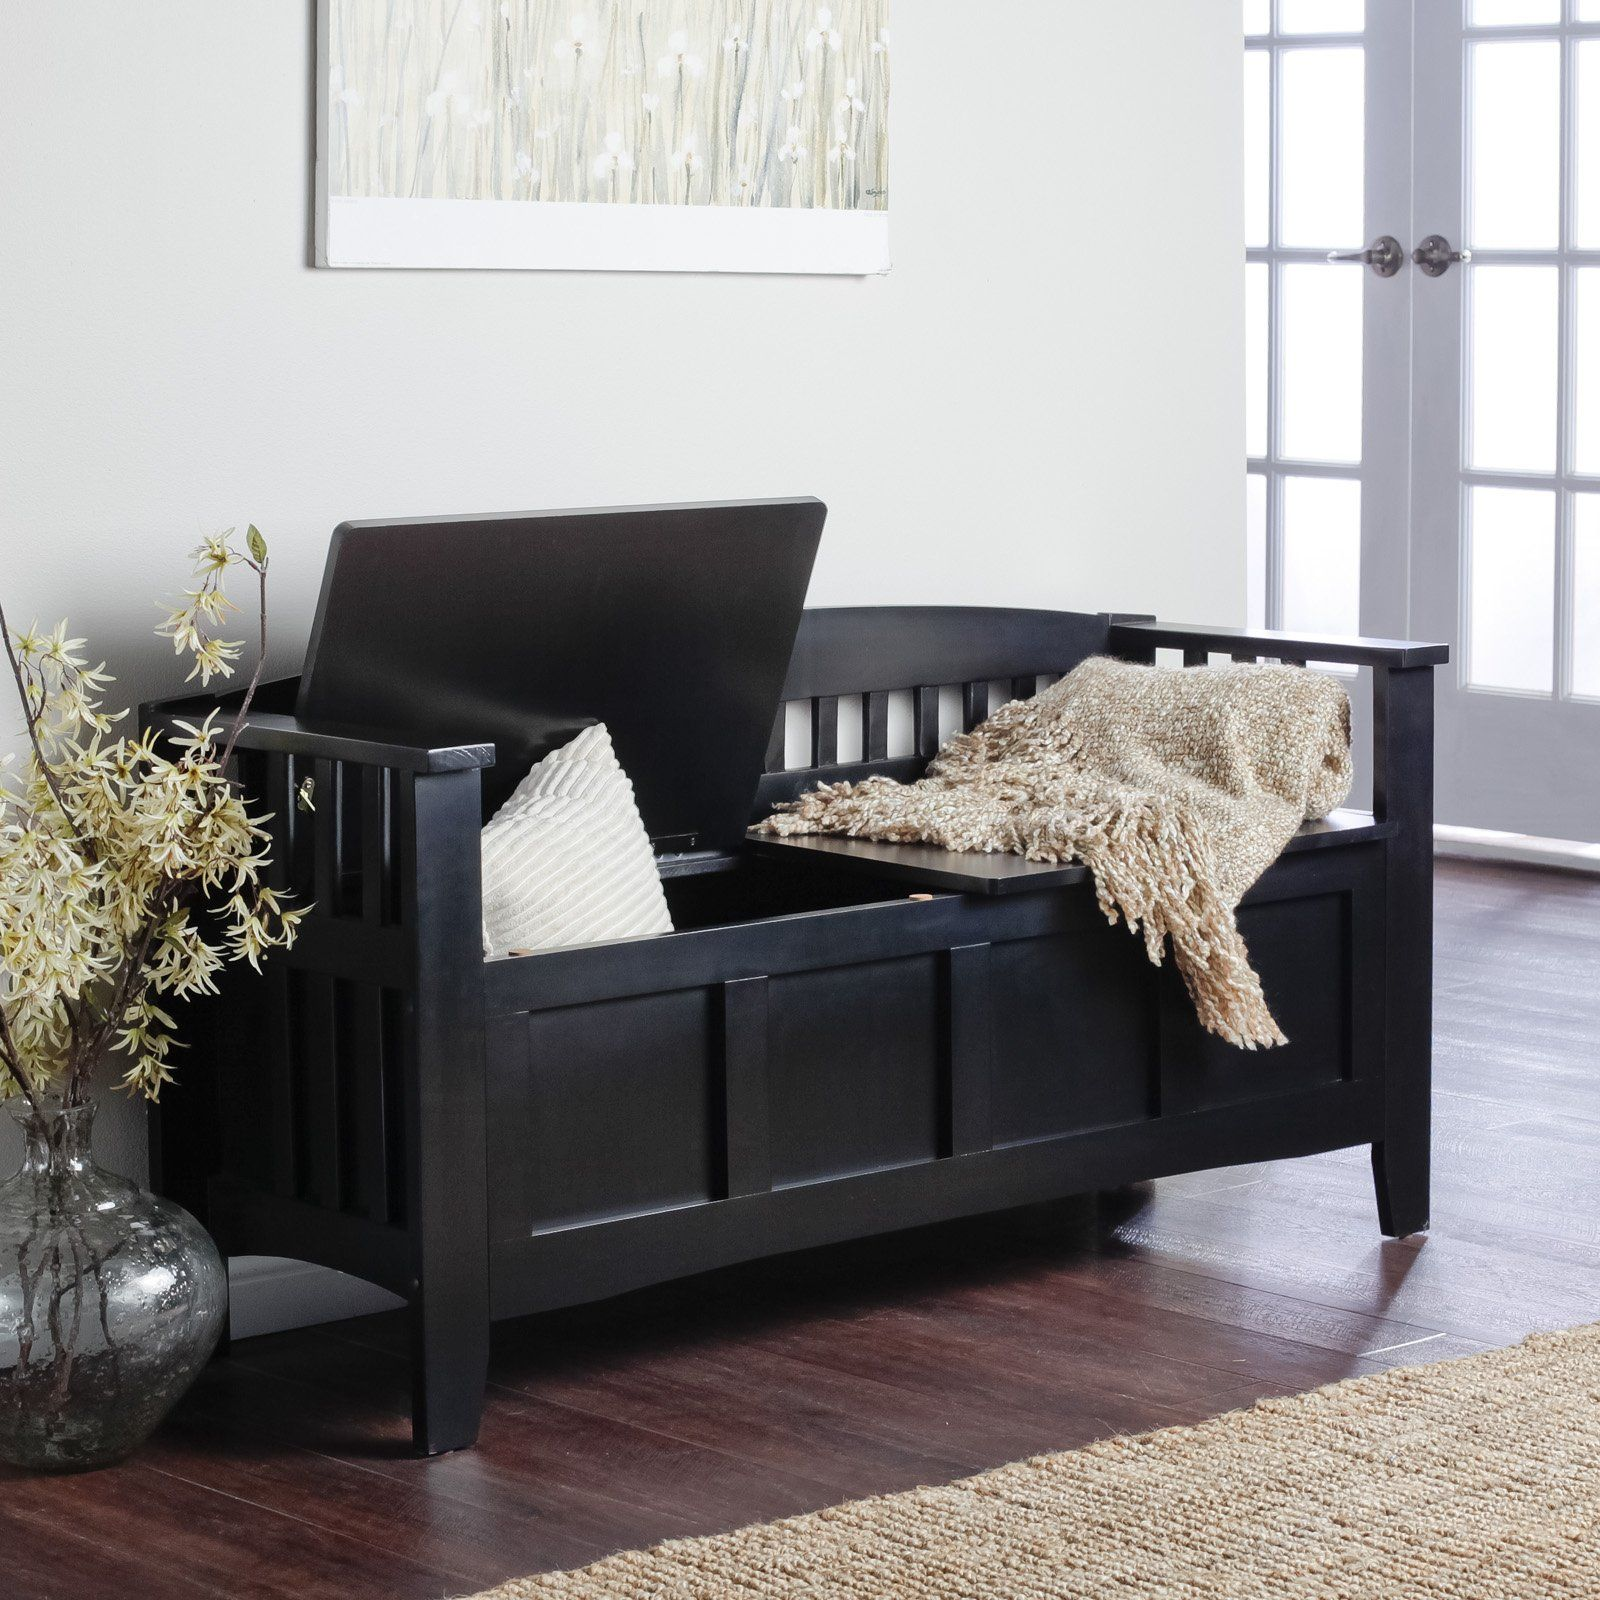 Indoor Bench Ideas Part - 20: Hunter Storage Bench - Black - Indoor Benches At Benches